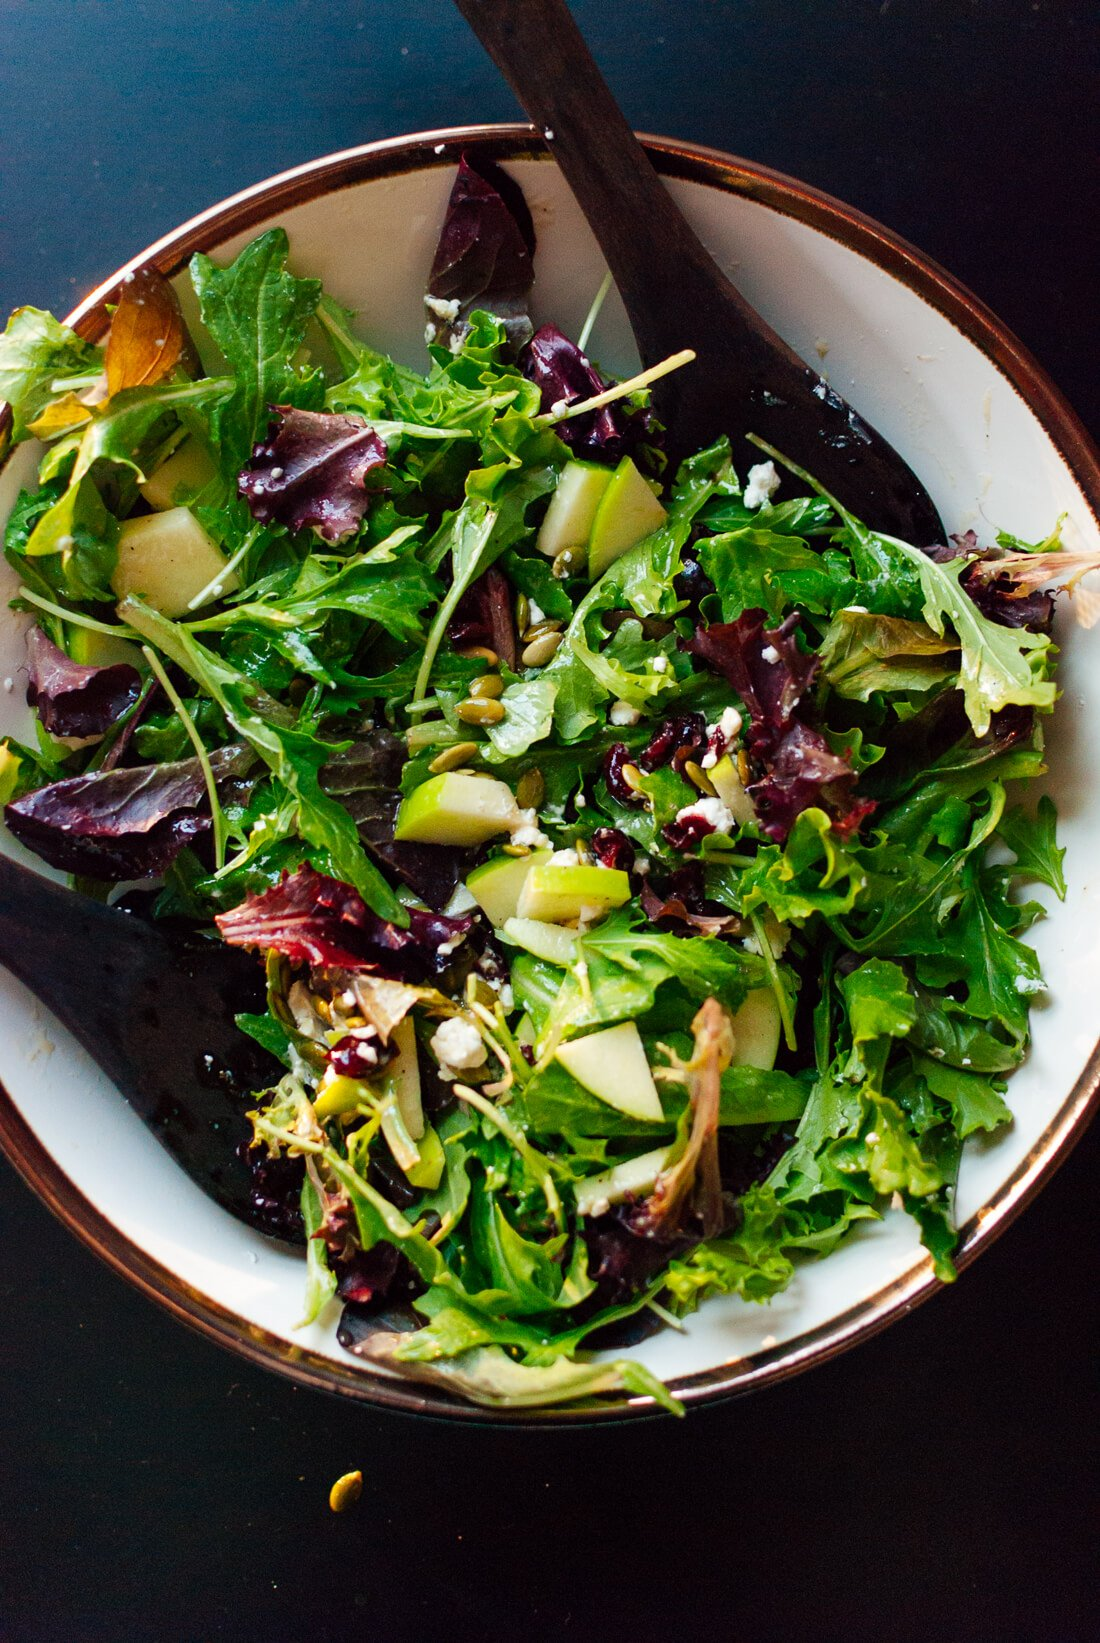 Green salad with apple, pepitas, cranberries and goat cheese